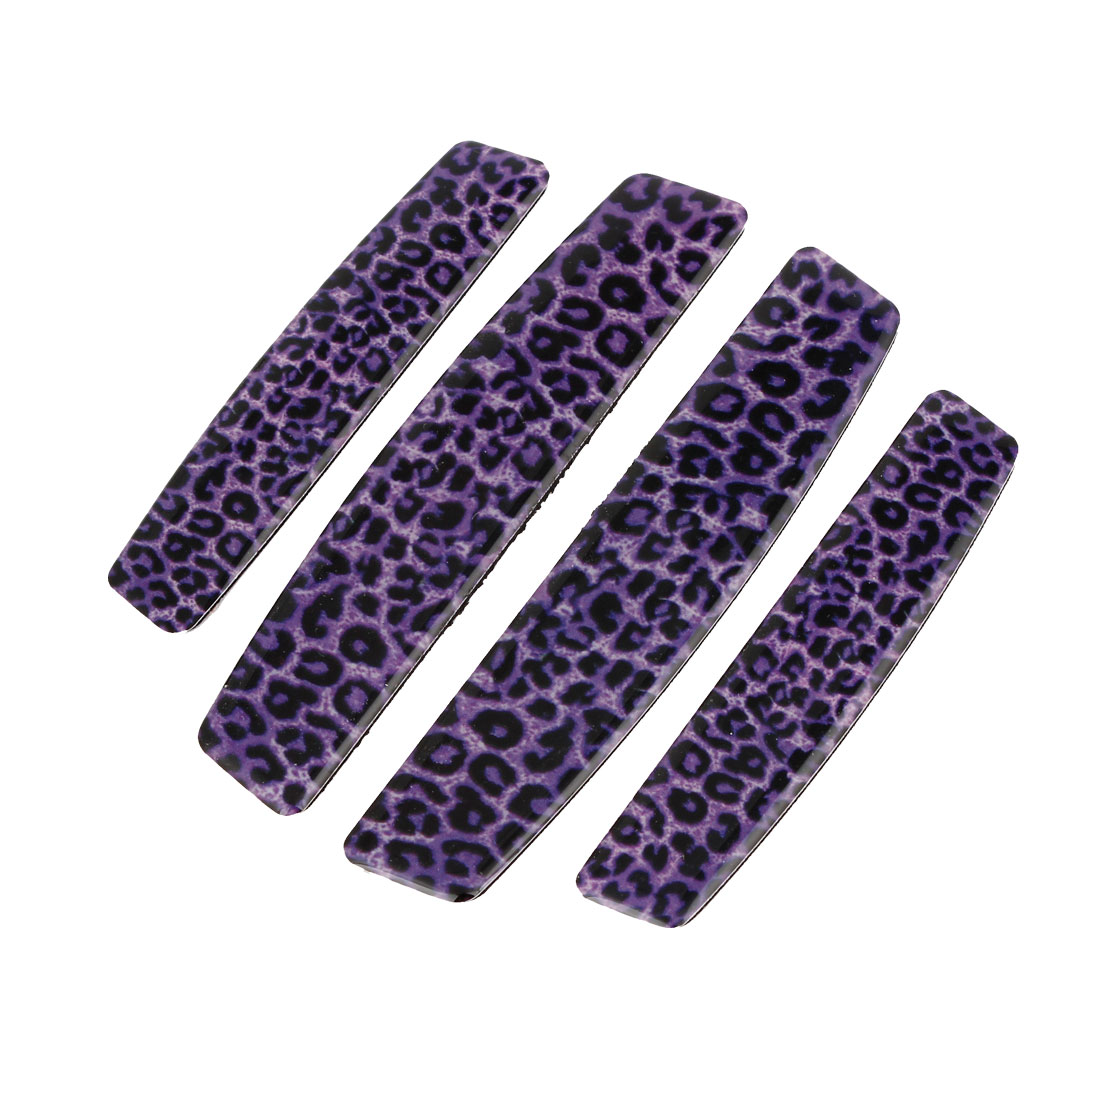 Purple Plastic Self-Adhesive Decoration Car Door Guard Protector Sticker 4 in 1